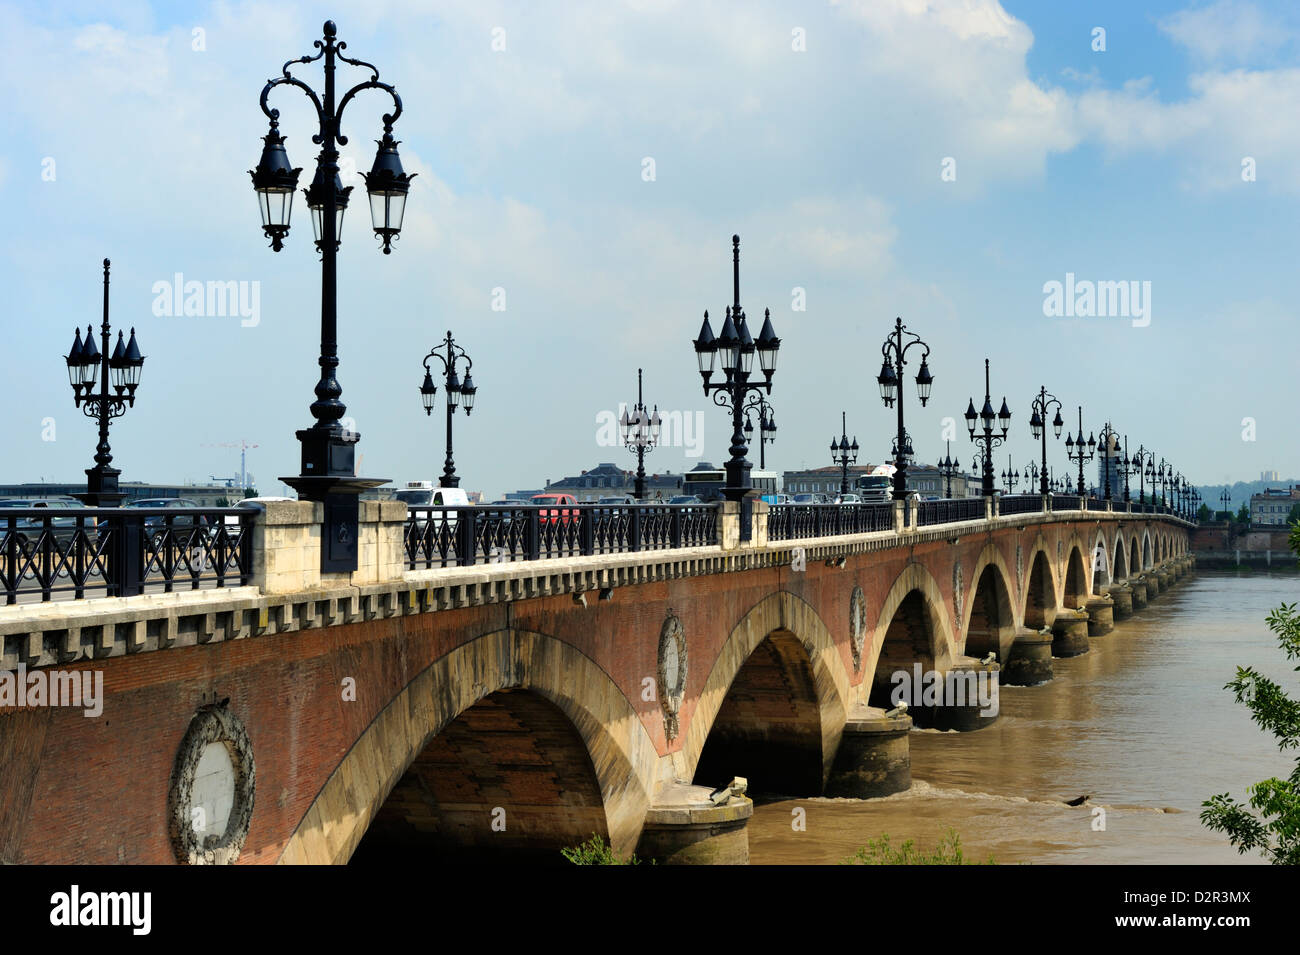 Pont de Pierre on the Garonne river, Bordeaux, UNESCO World Heritage Site, Gironde, Aquitaine, France, Europe - Stock Image